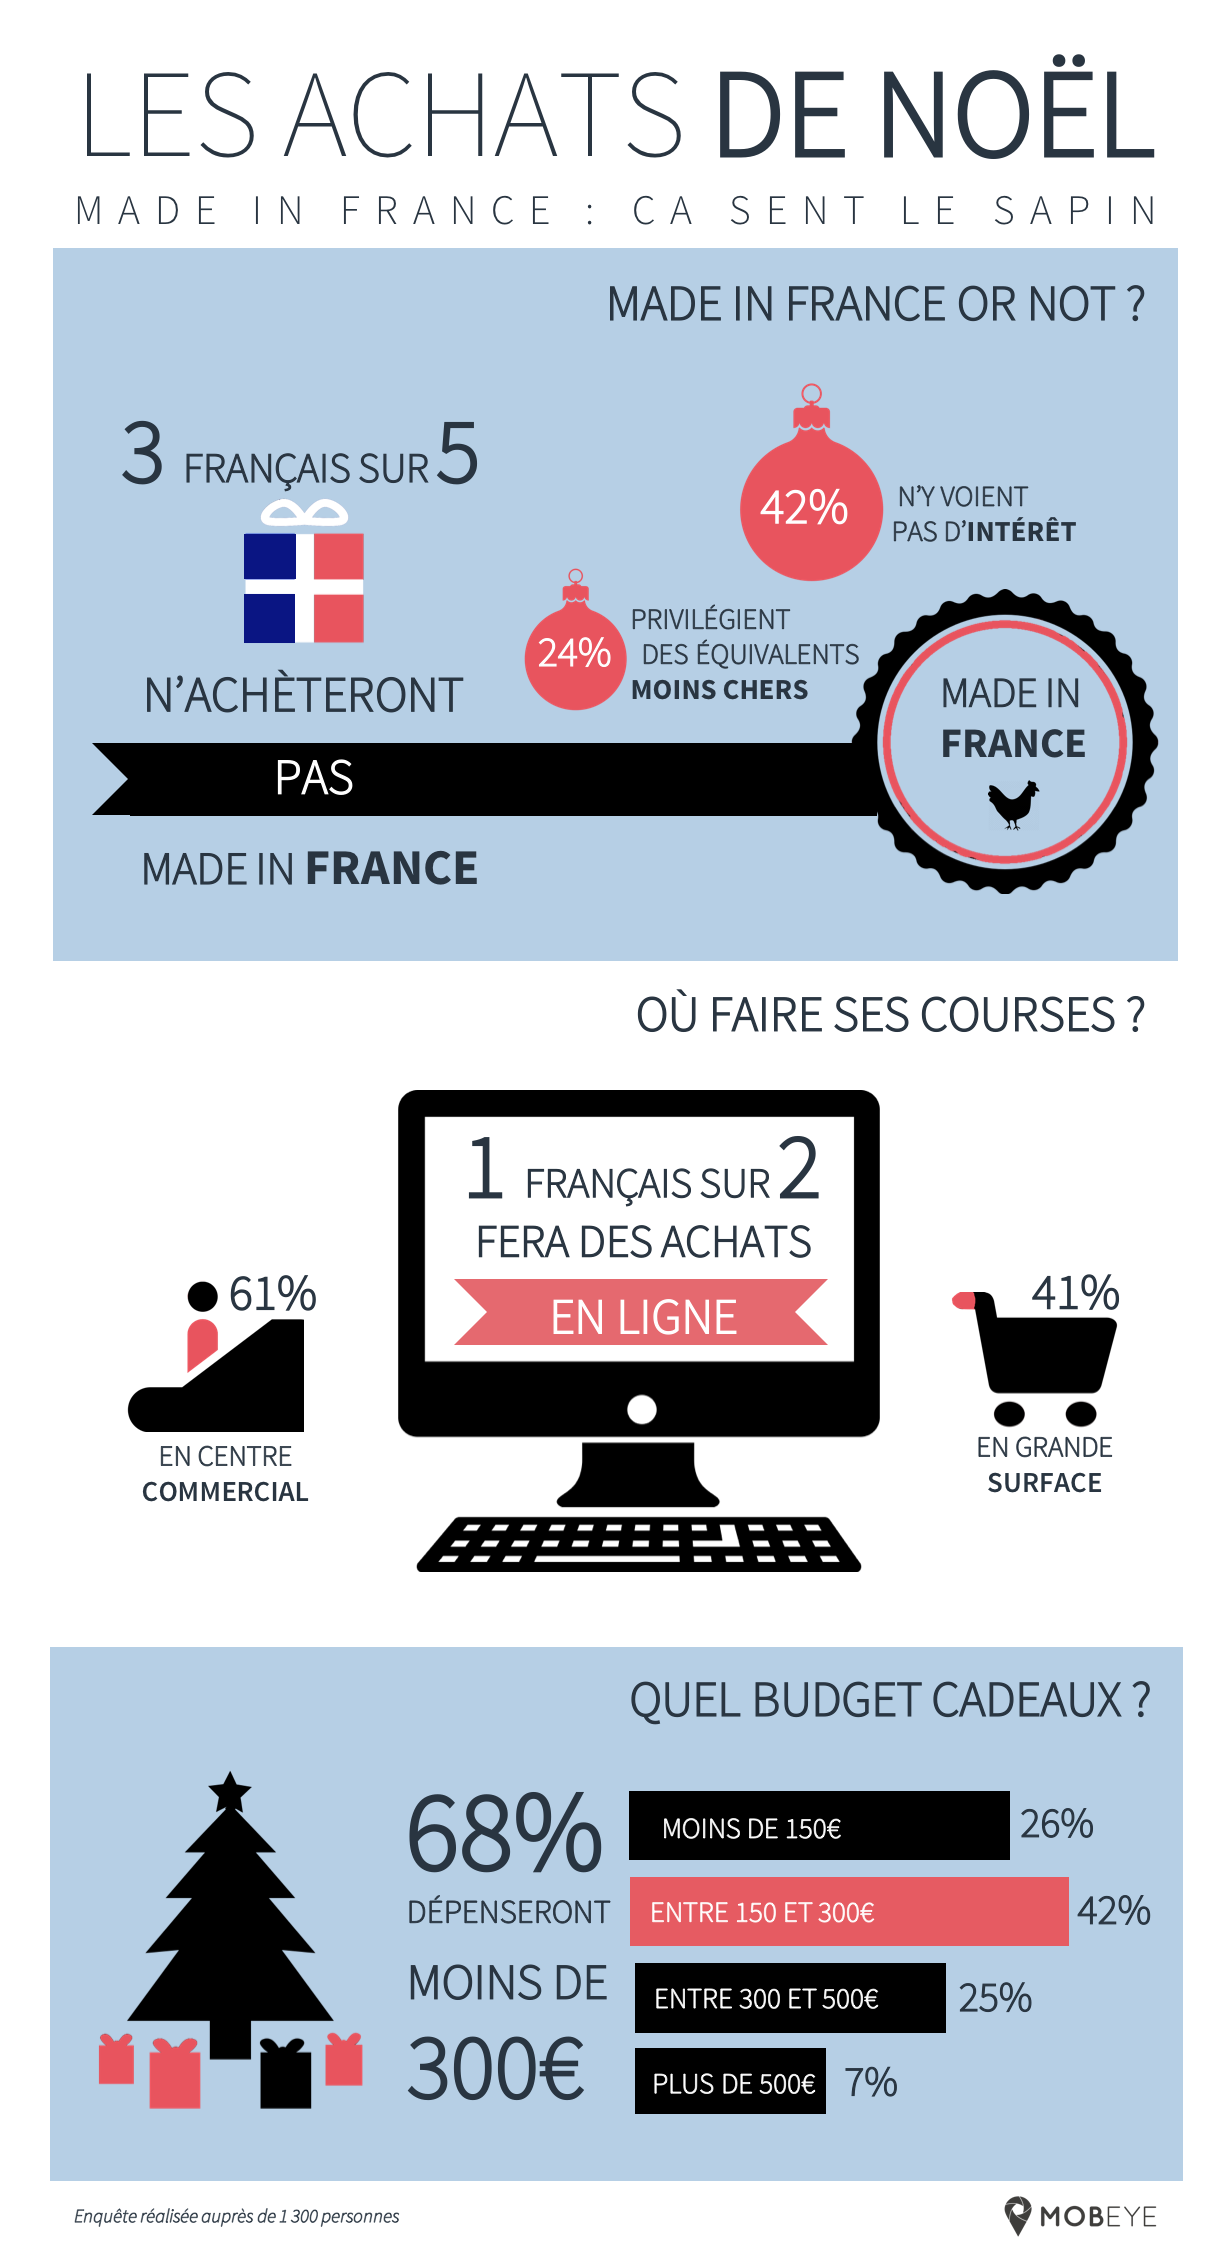 Noël 2015 : infographie Achats de Noël Made in France or not